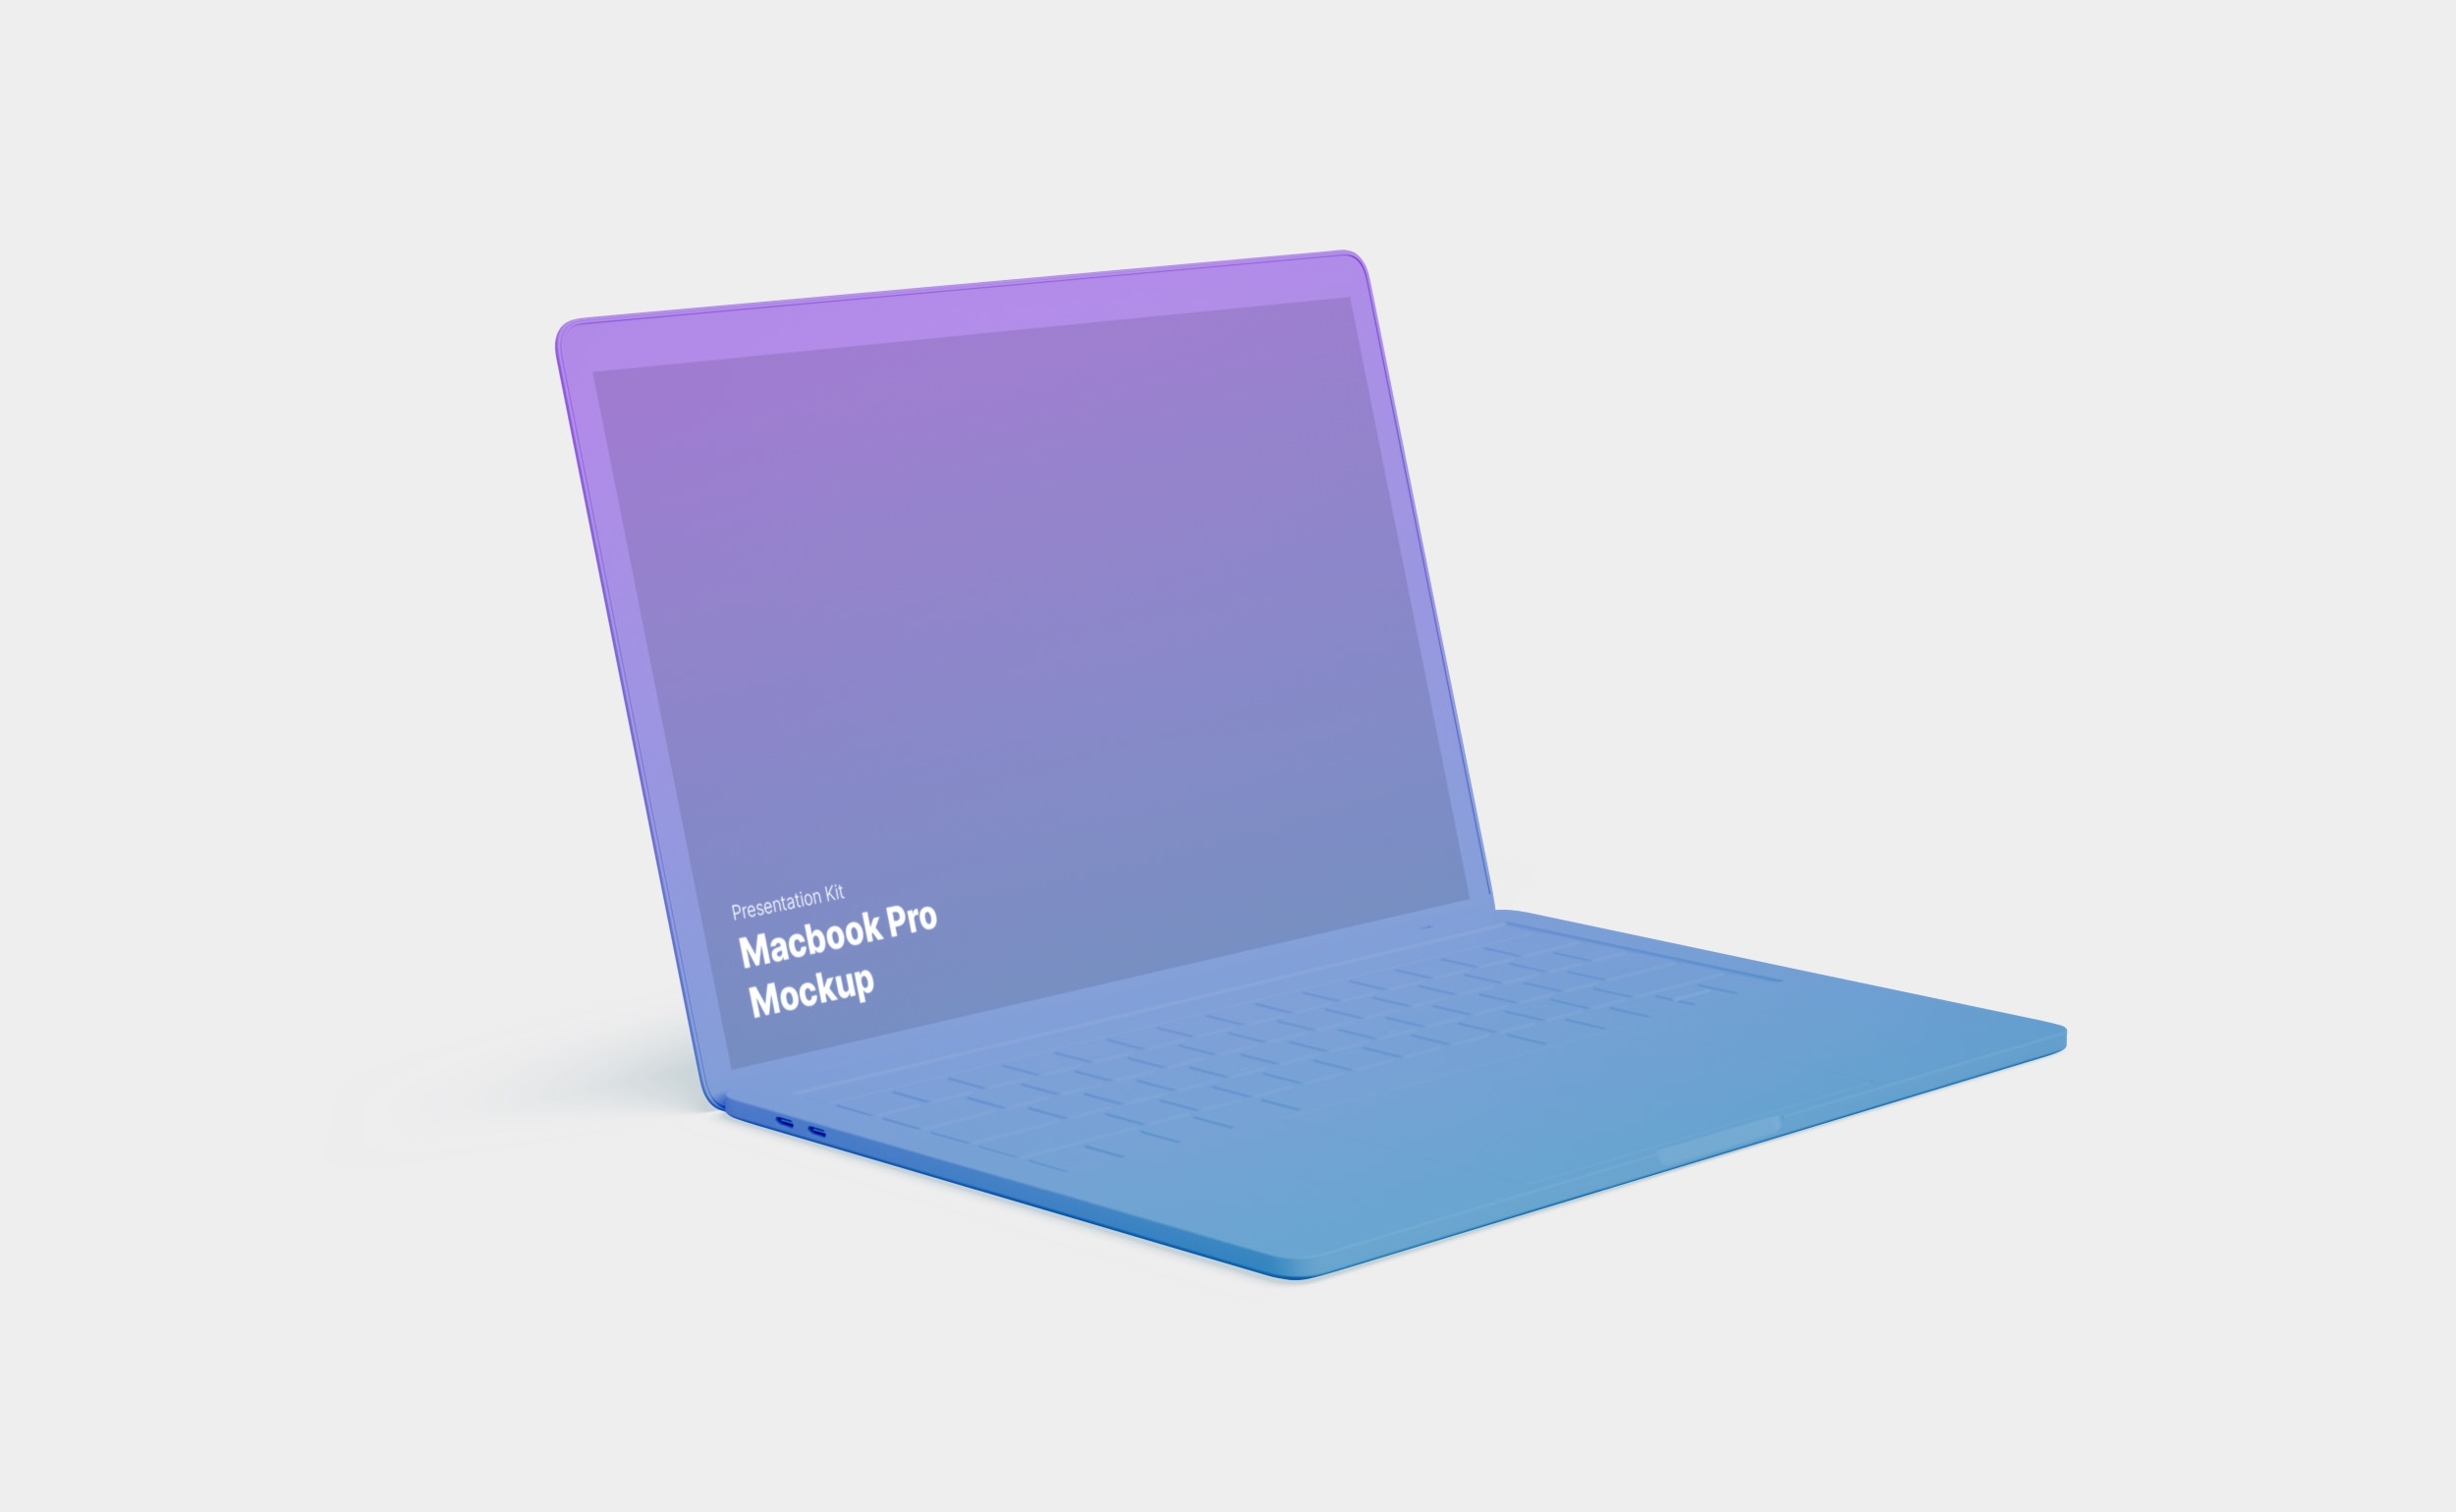 Macbook and Macbook Pro Mockups for Sketch, Photoshop and Figma